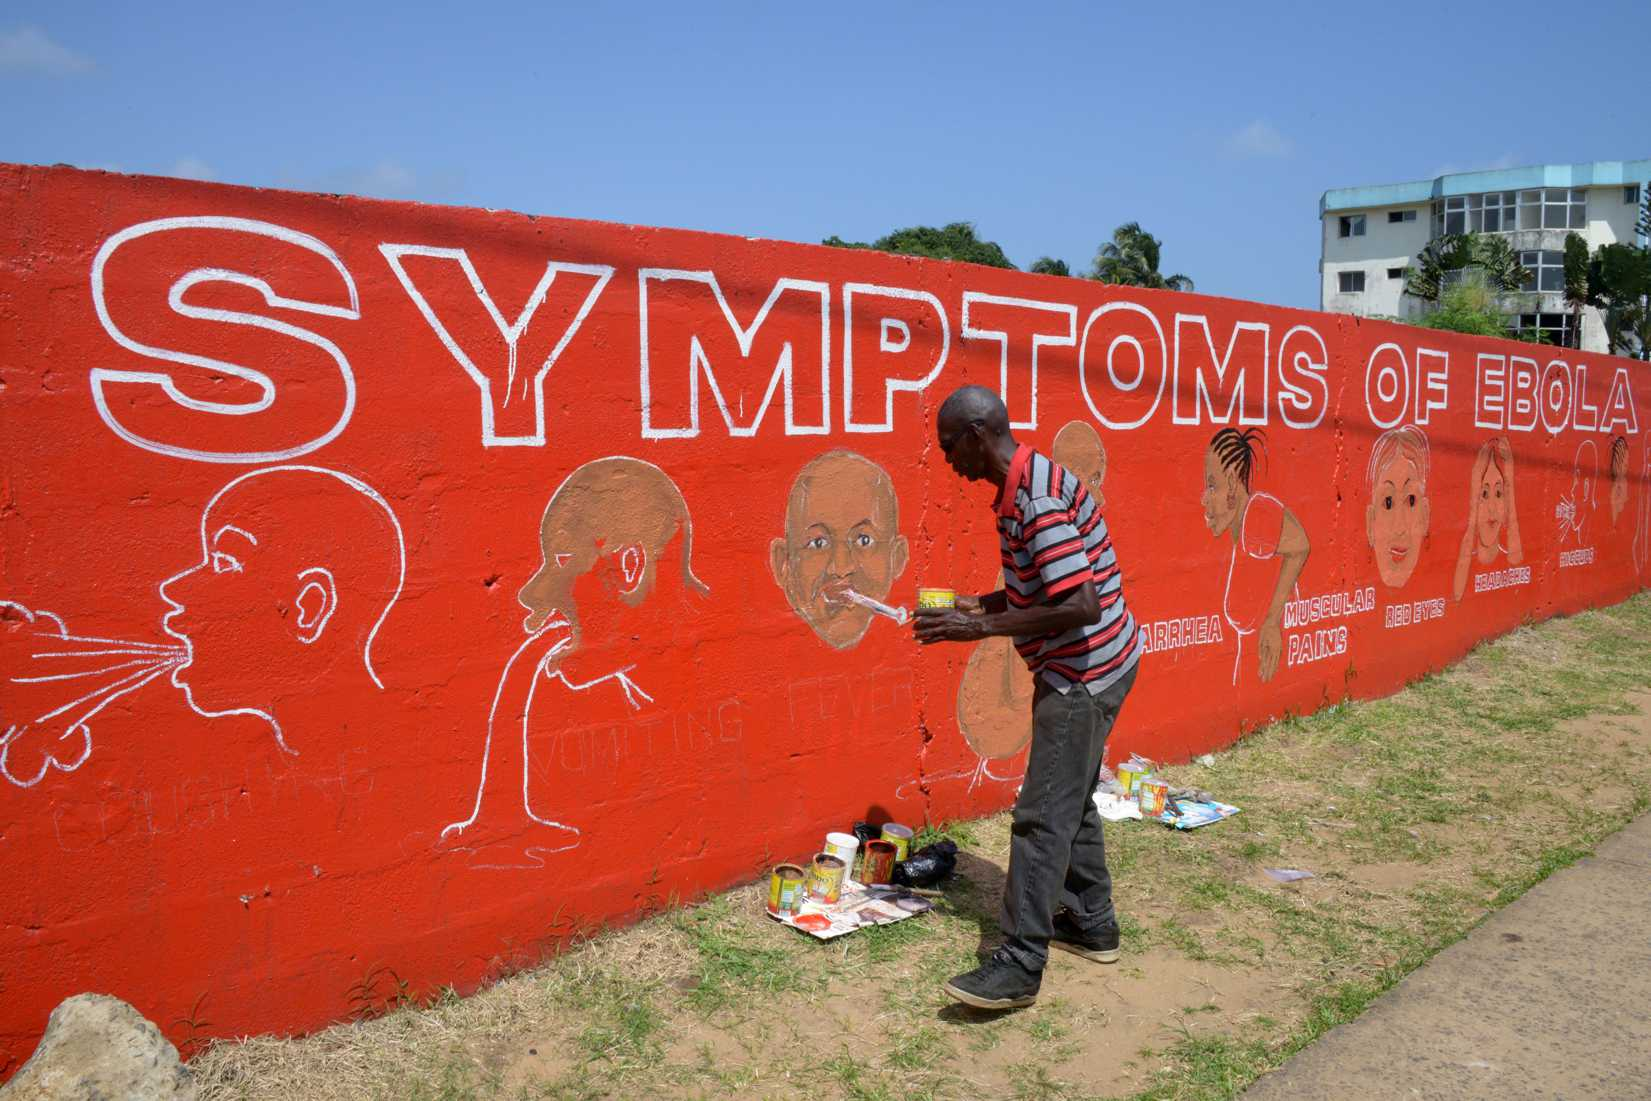 A street artist, Stephen Doe, paints an educational mural to inform people about the symptoms of the deadly Ebola virus in the Liberian capital, Monrovia, on Sept. 8, 2014